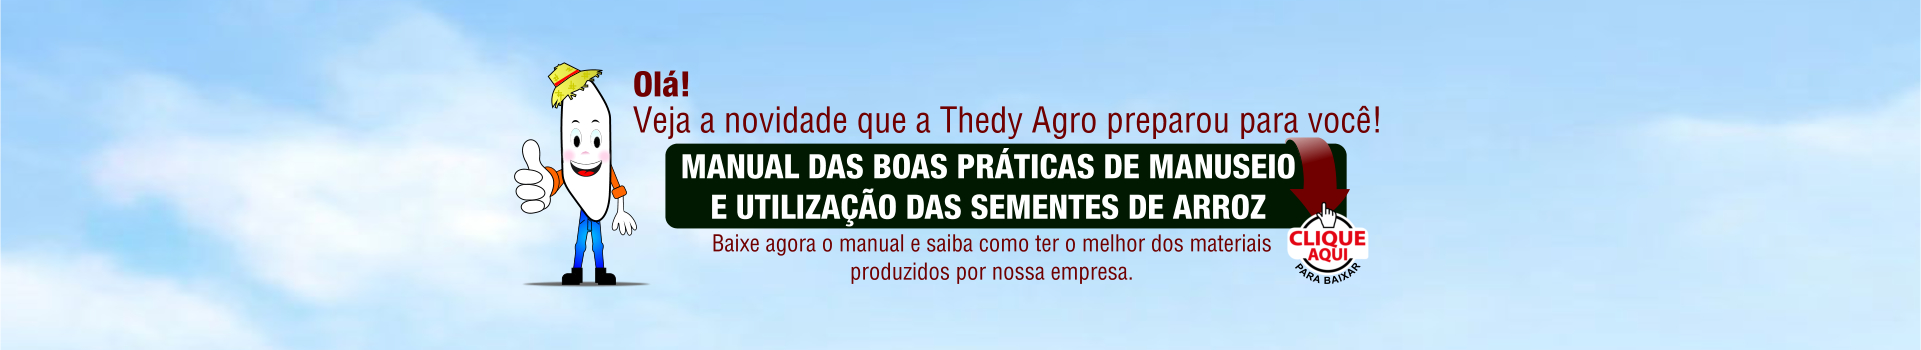 thedyagro_25_anos_manual_1920x350